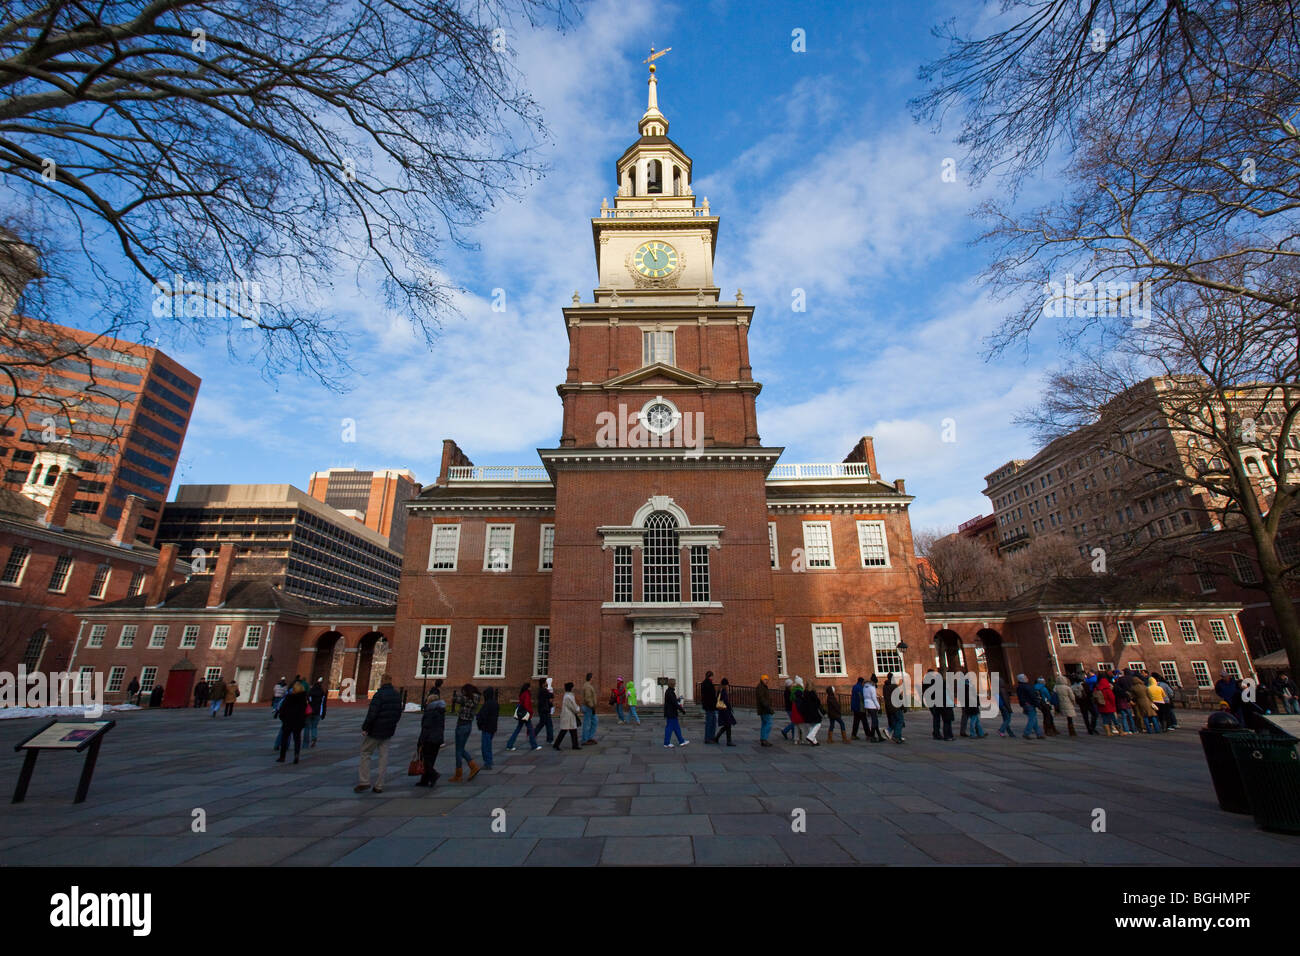 Independence Hall in Philadelphia, Pennsylvania - Stock Image